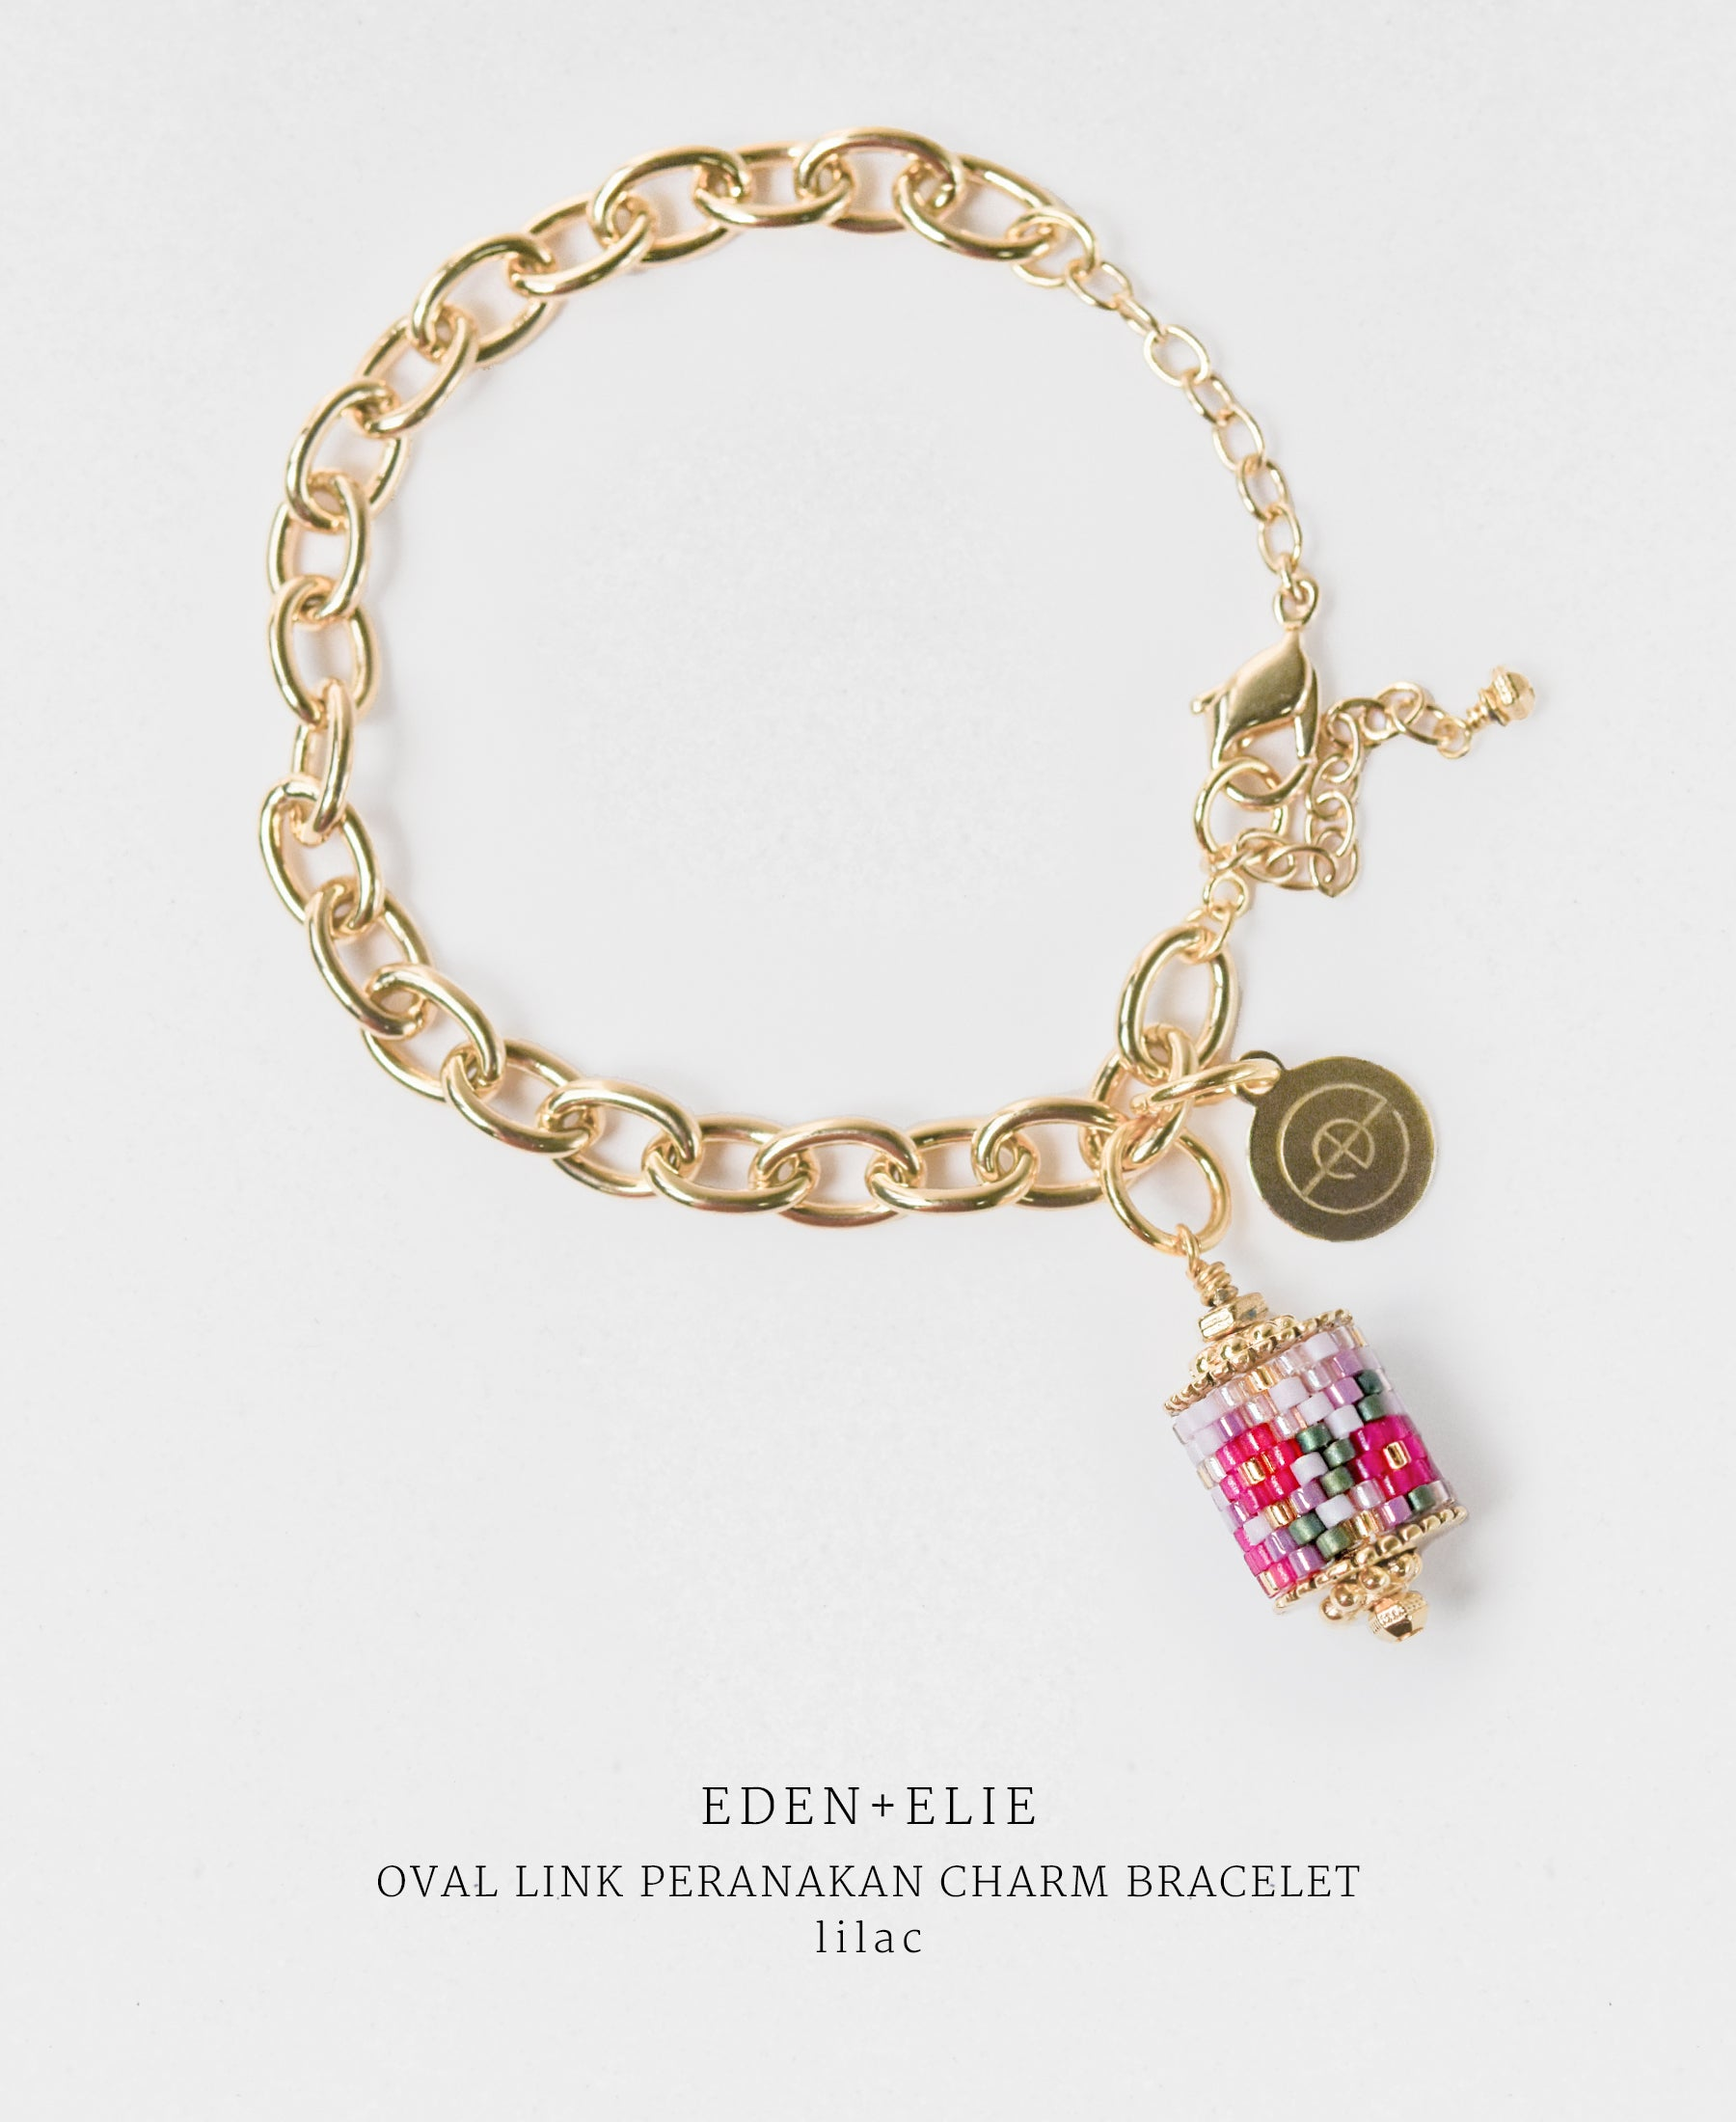 EDEN + ELIE gold plated jewelry Modern Peranakan gold charm bracelet - lilac